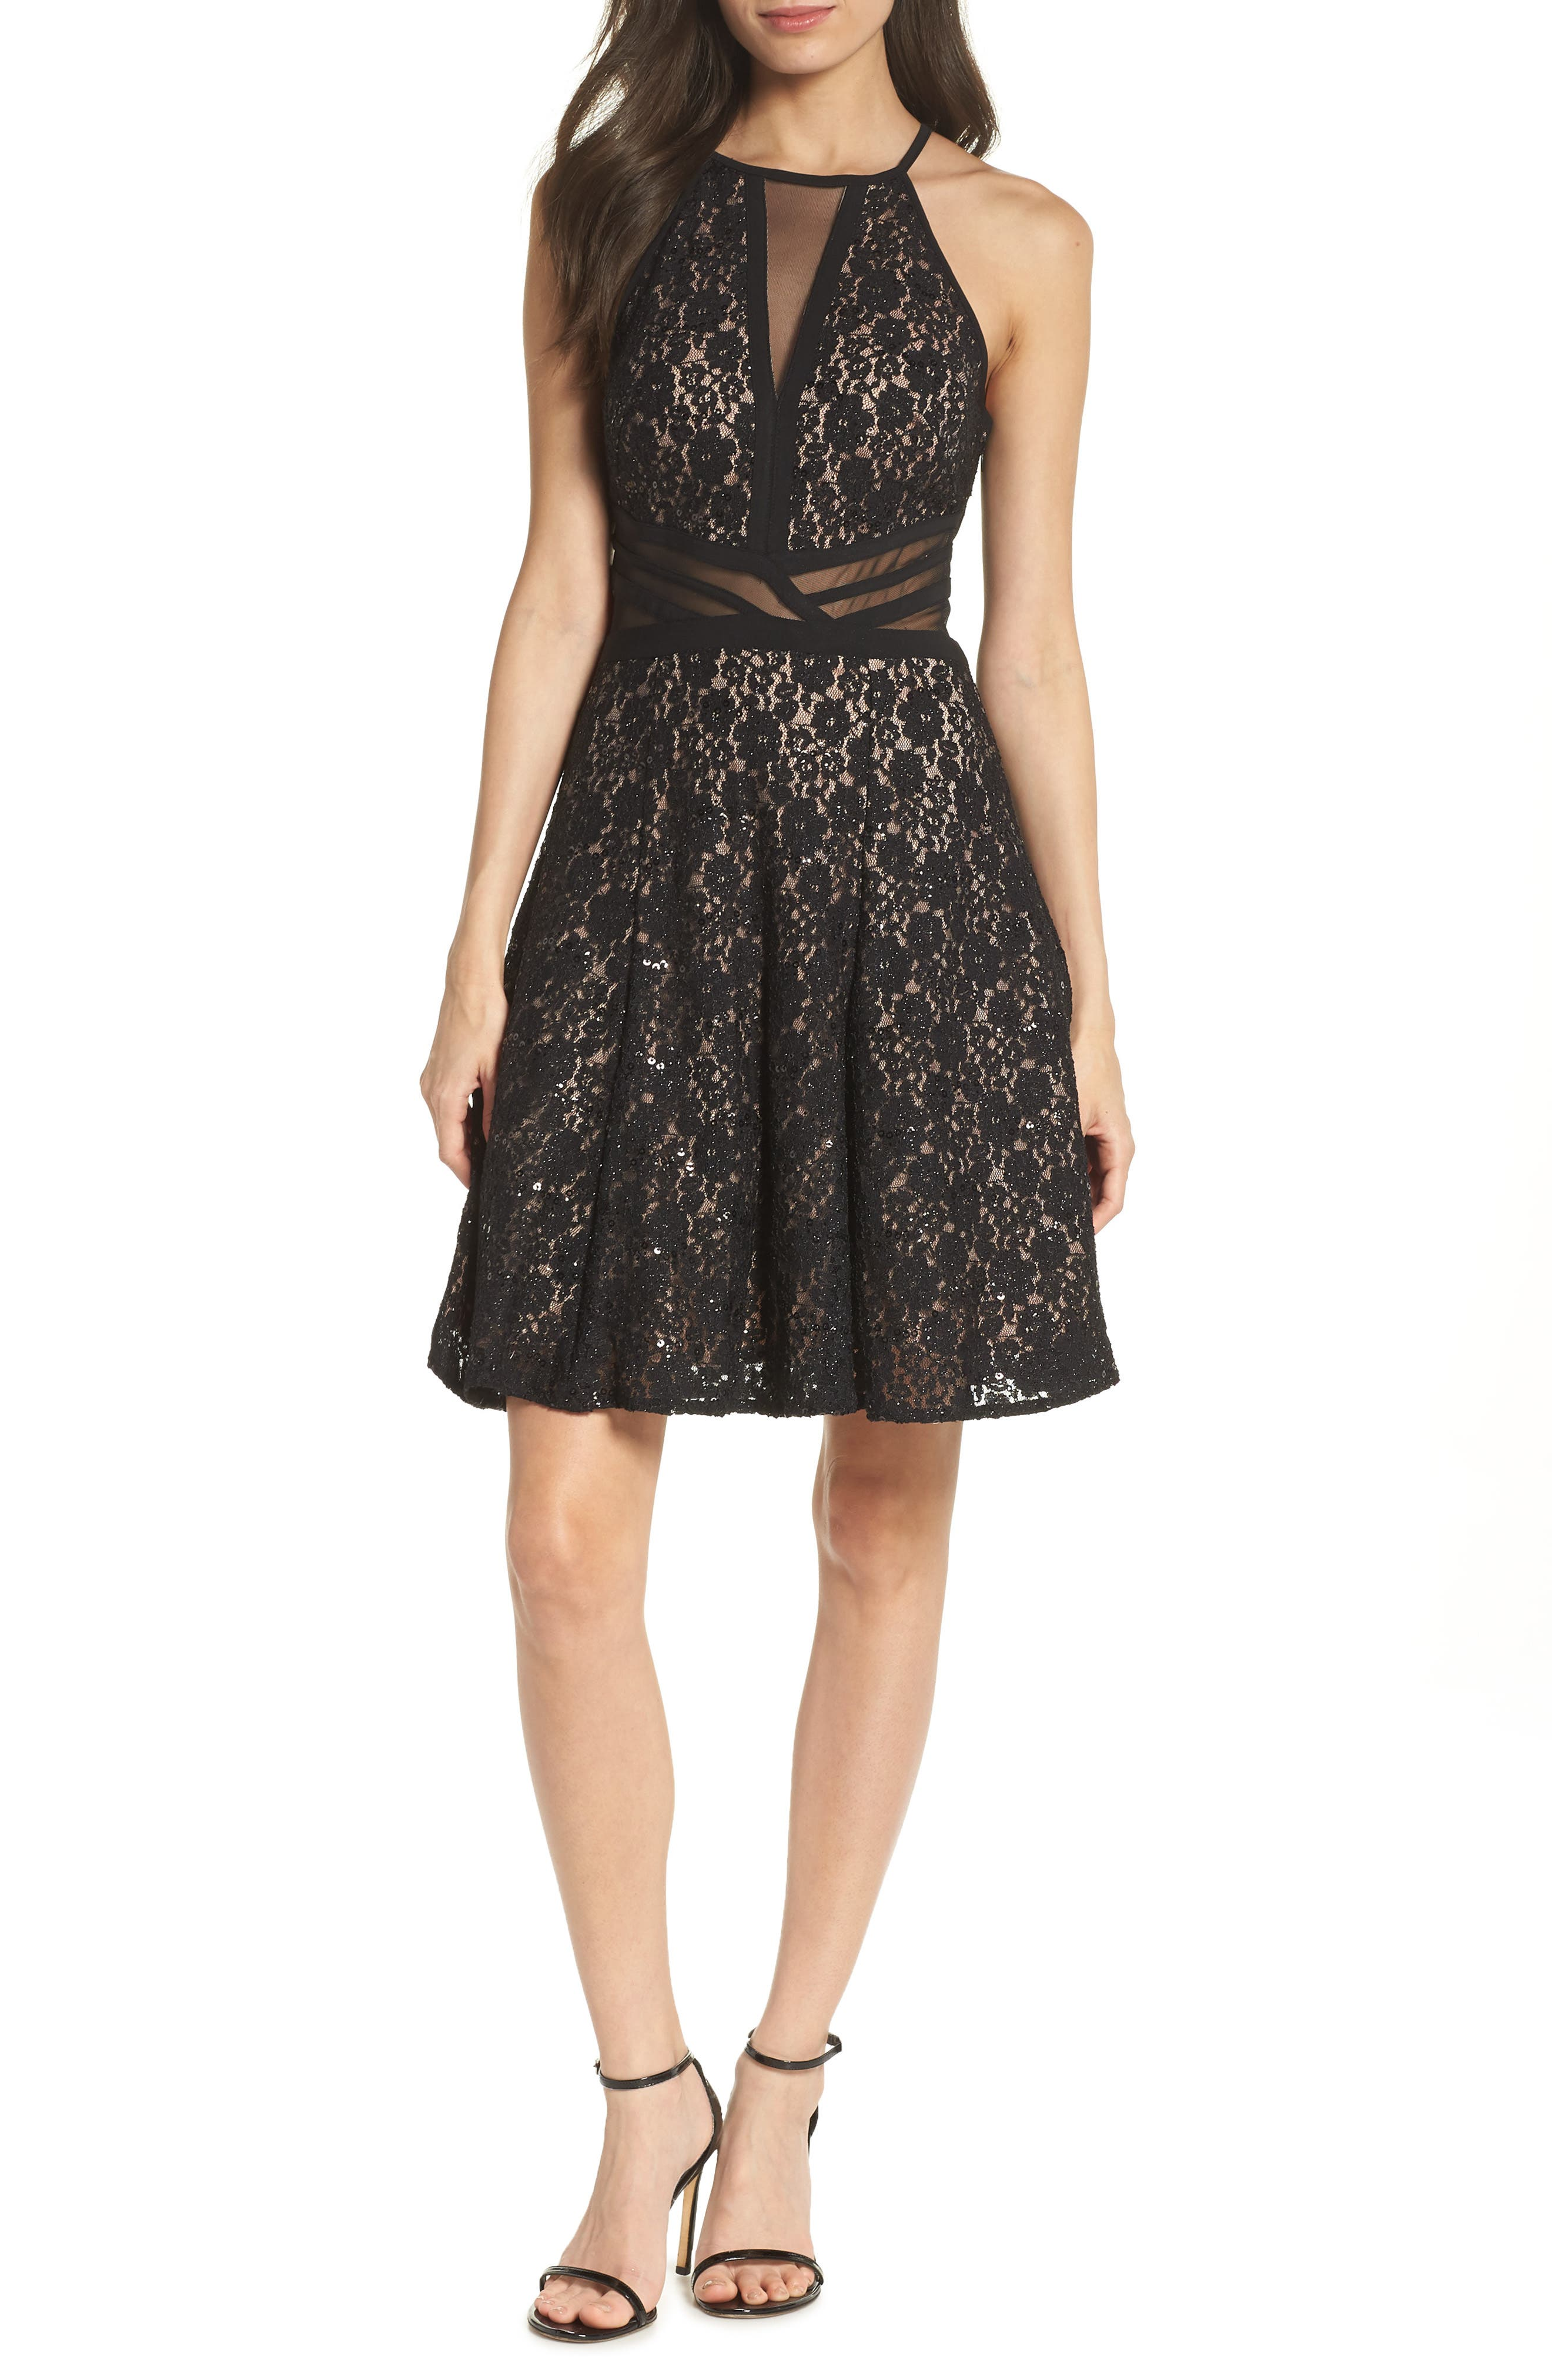 MORGAN & CO.,                             Sheer Inset Lace Fit & Flare Dress,                             Main thumbnail 1, color,                             BLACK/ NUDE